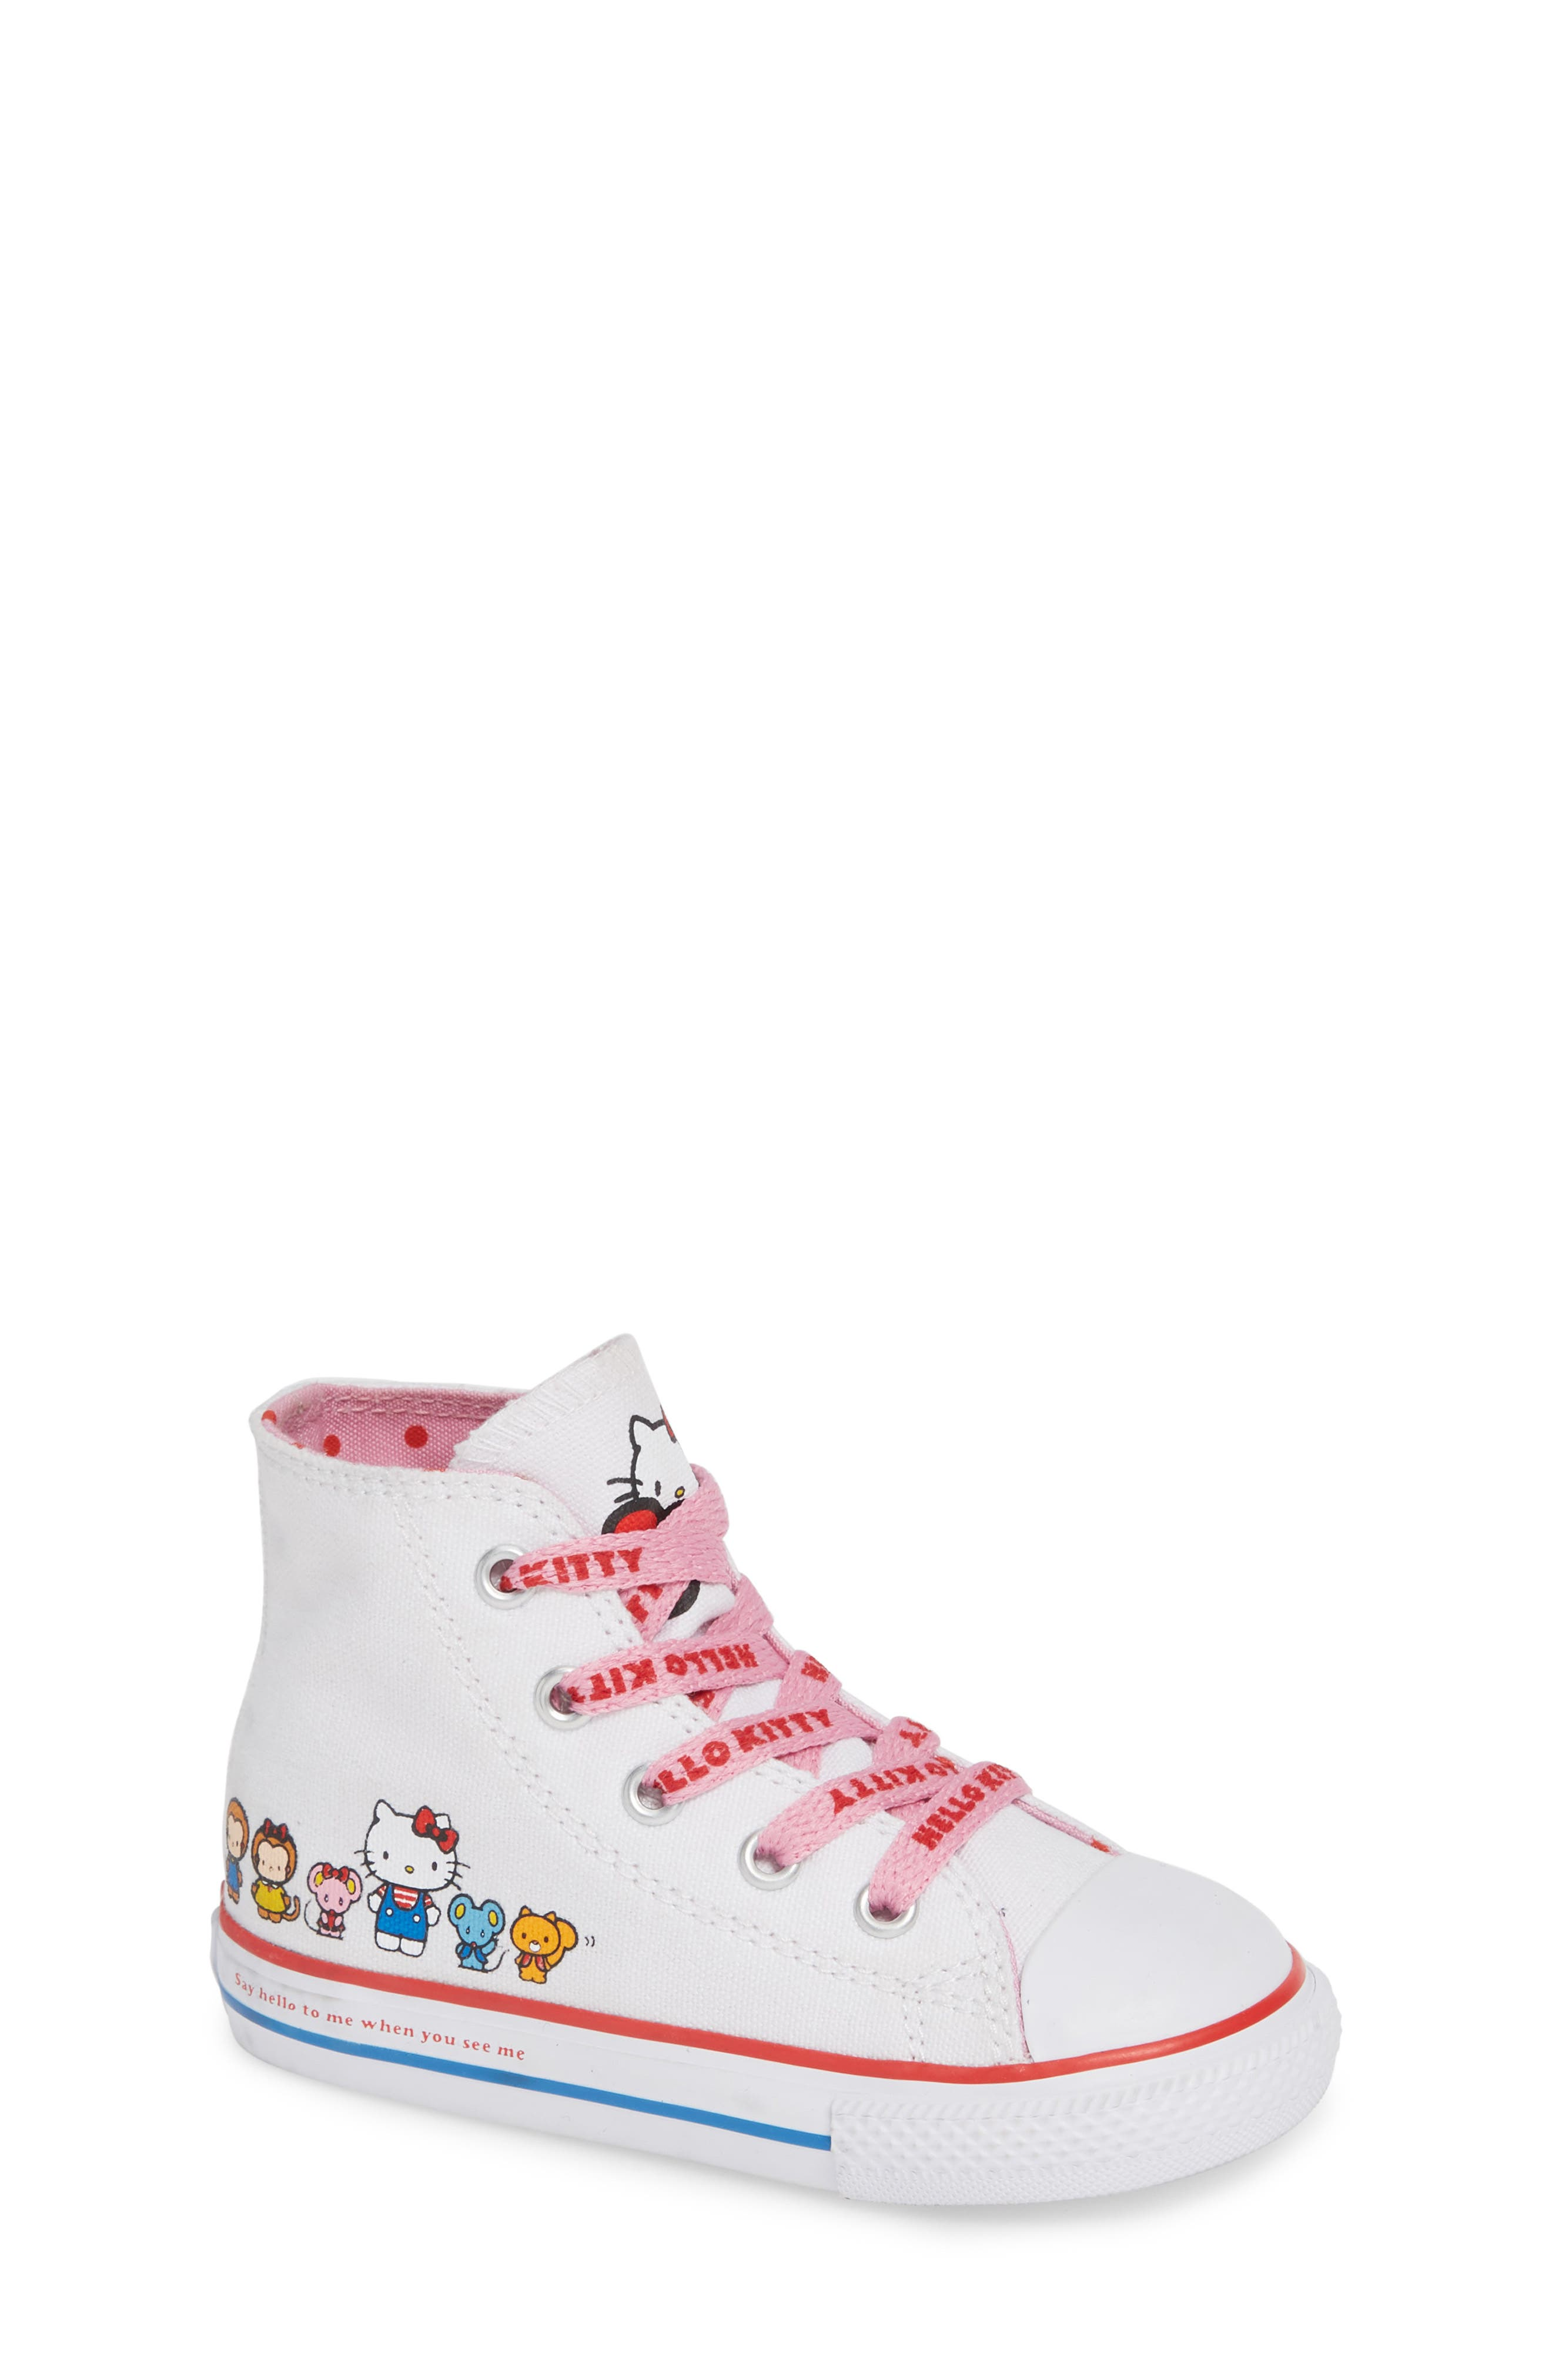 Chuck Taylor<sup>®</sup> All Star<sup>®</sup> Hello Kitty<sup>®</sup> High Top Sneaker,                             Main thumbnail 1, color,                             WHITE